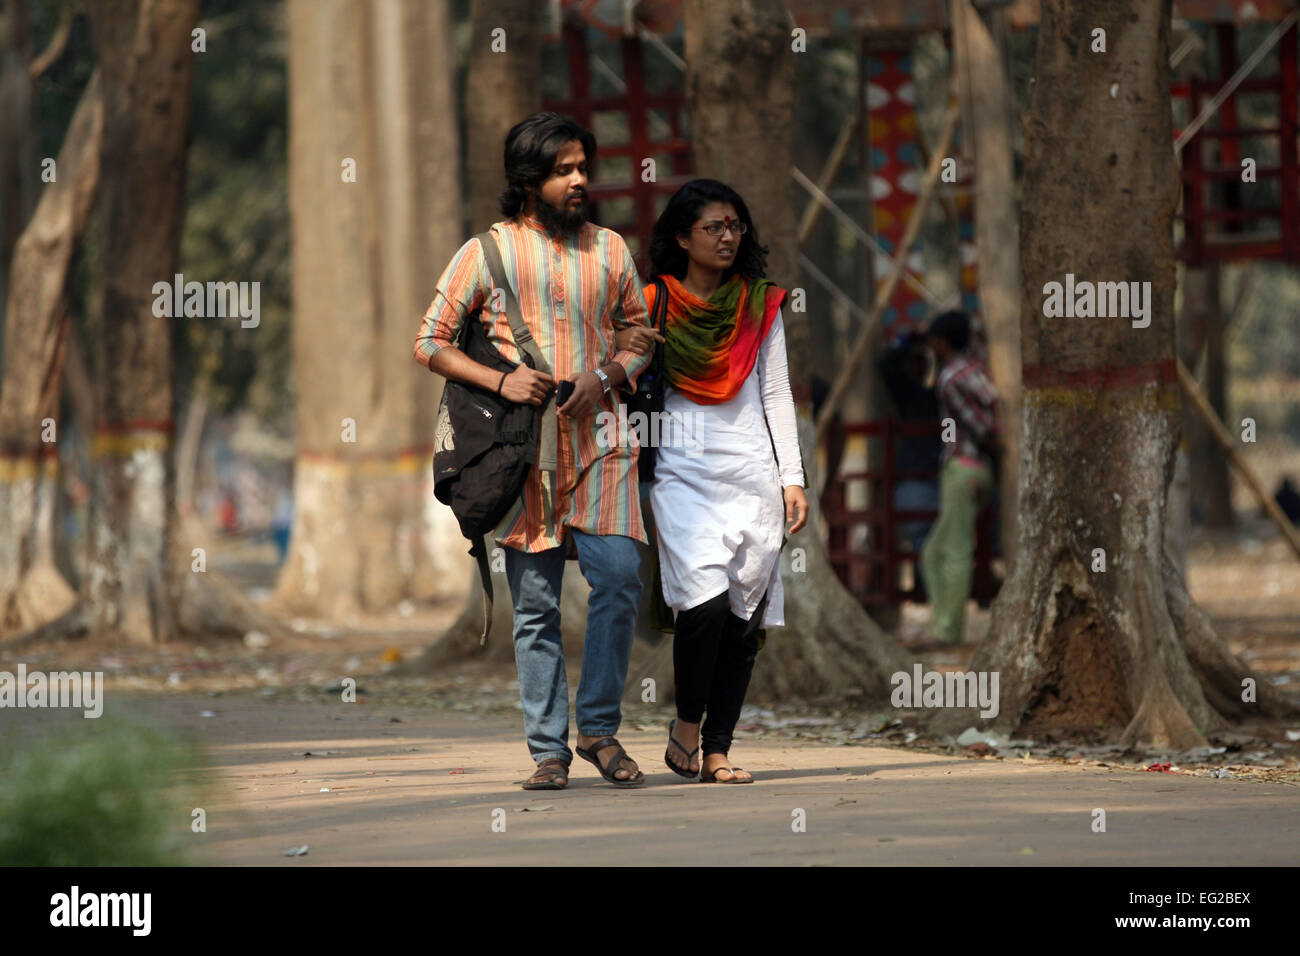 Dhaka bangladesh 14th february 2015 a young couple on valentines day at shohrawardi uddan in dhaka